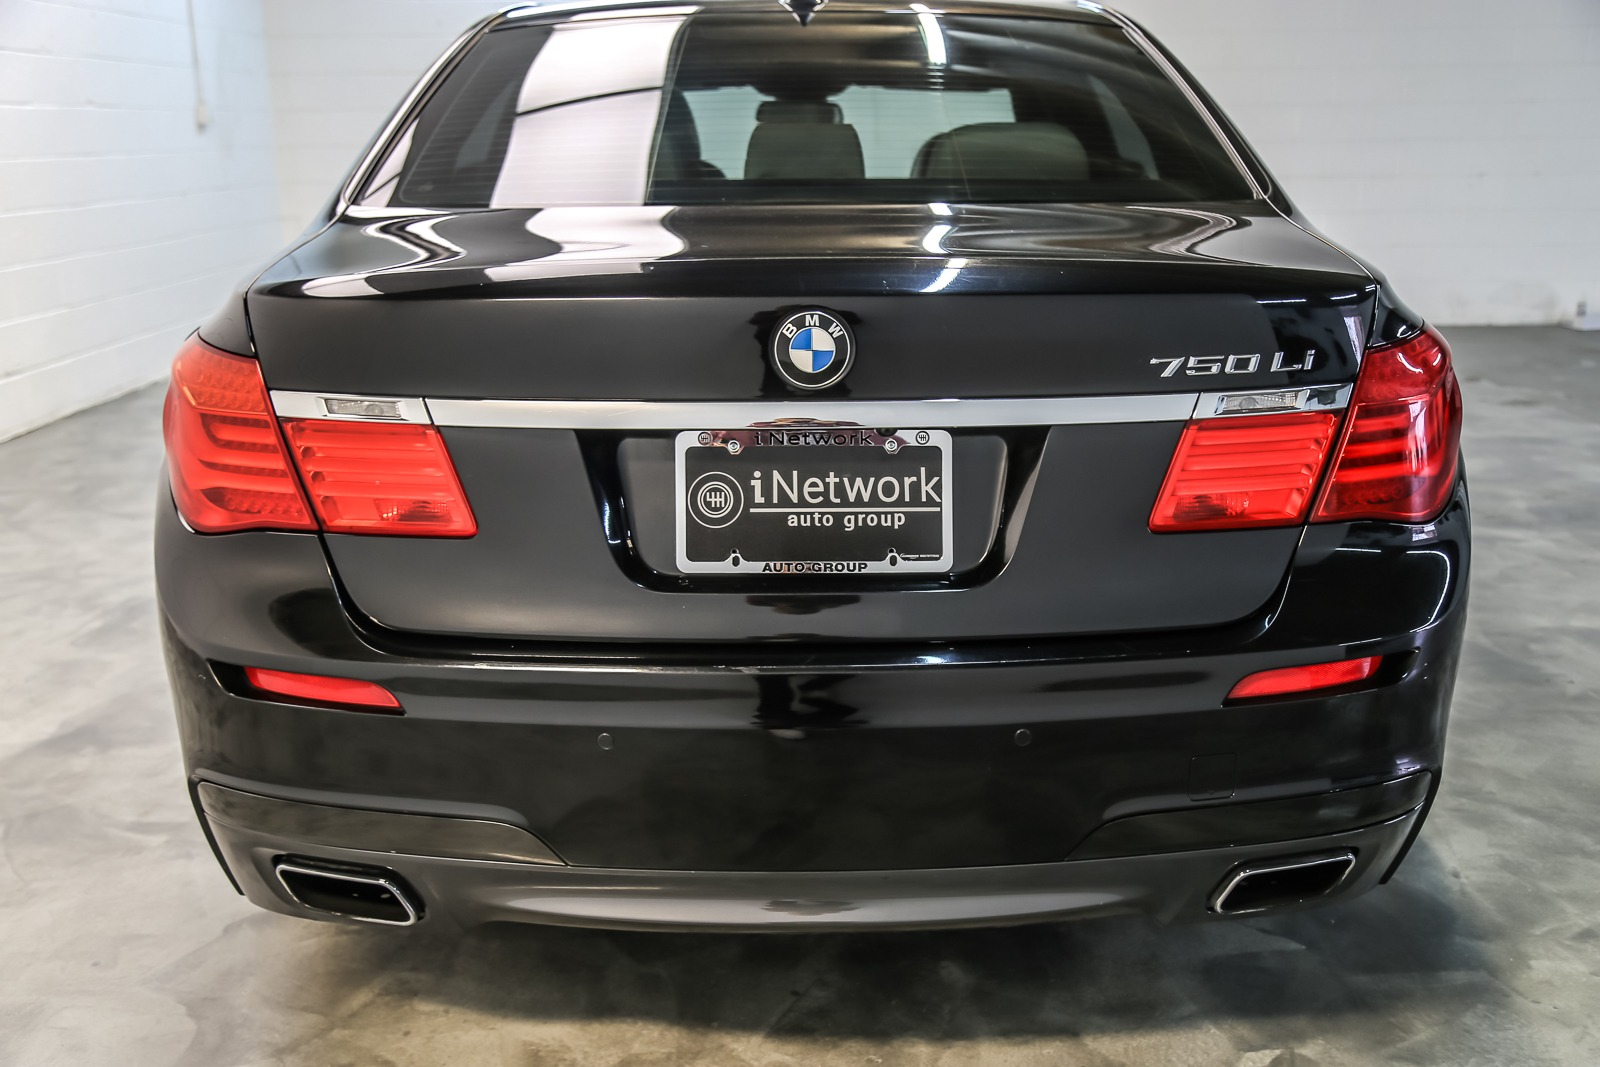 Used 2012 Bmw 7 Series 750li For Sale 12 990 Inetwork Auto Group Stock C964344